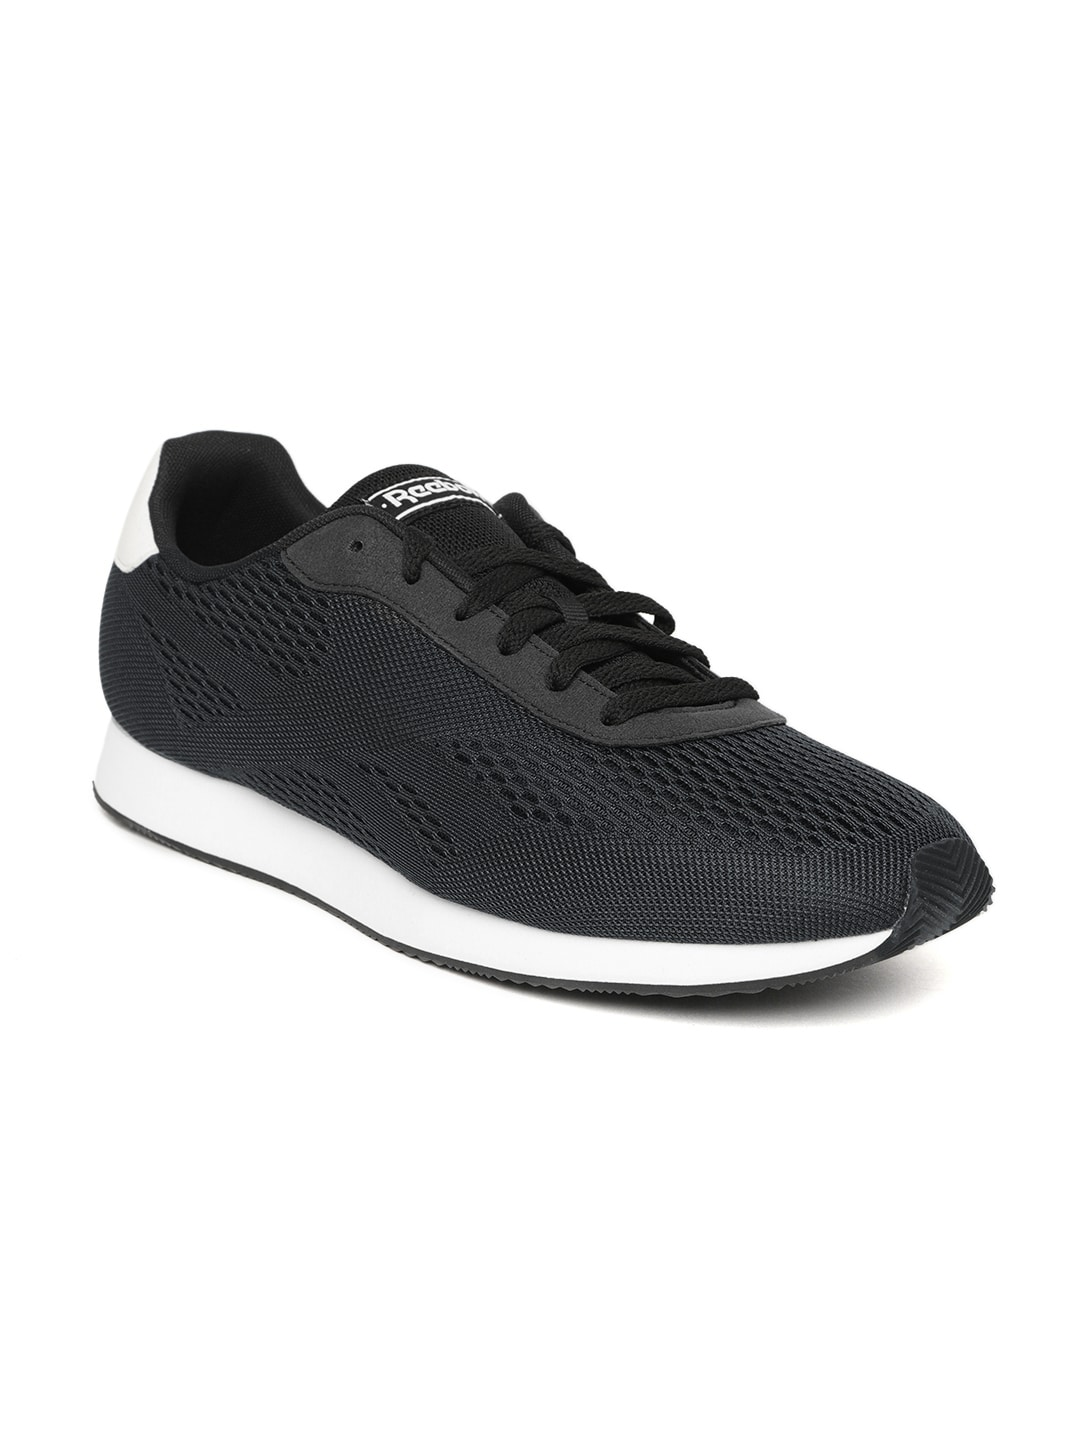 3d4c4eb1287231 Reebok Casual Footwear - Buy Reebok Casual Footwear Online in India